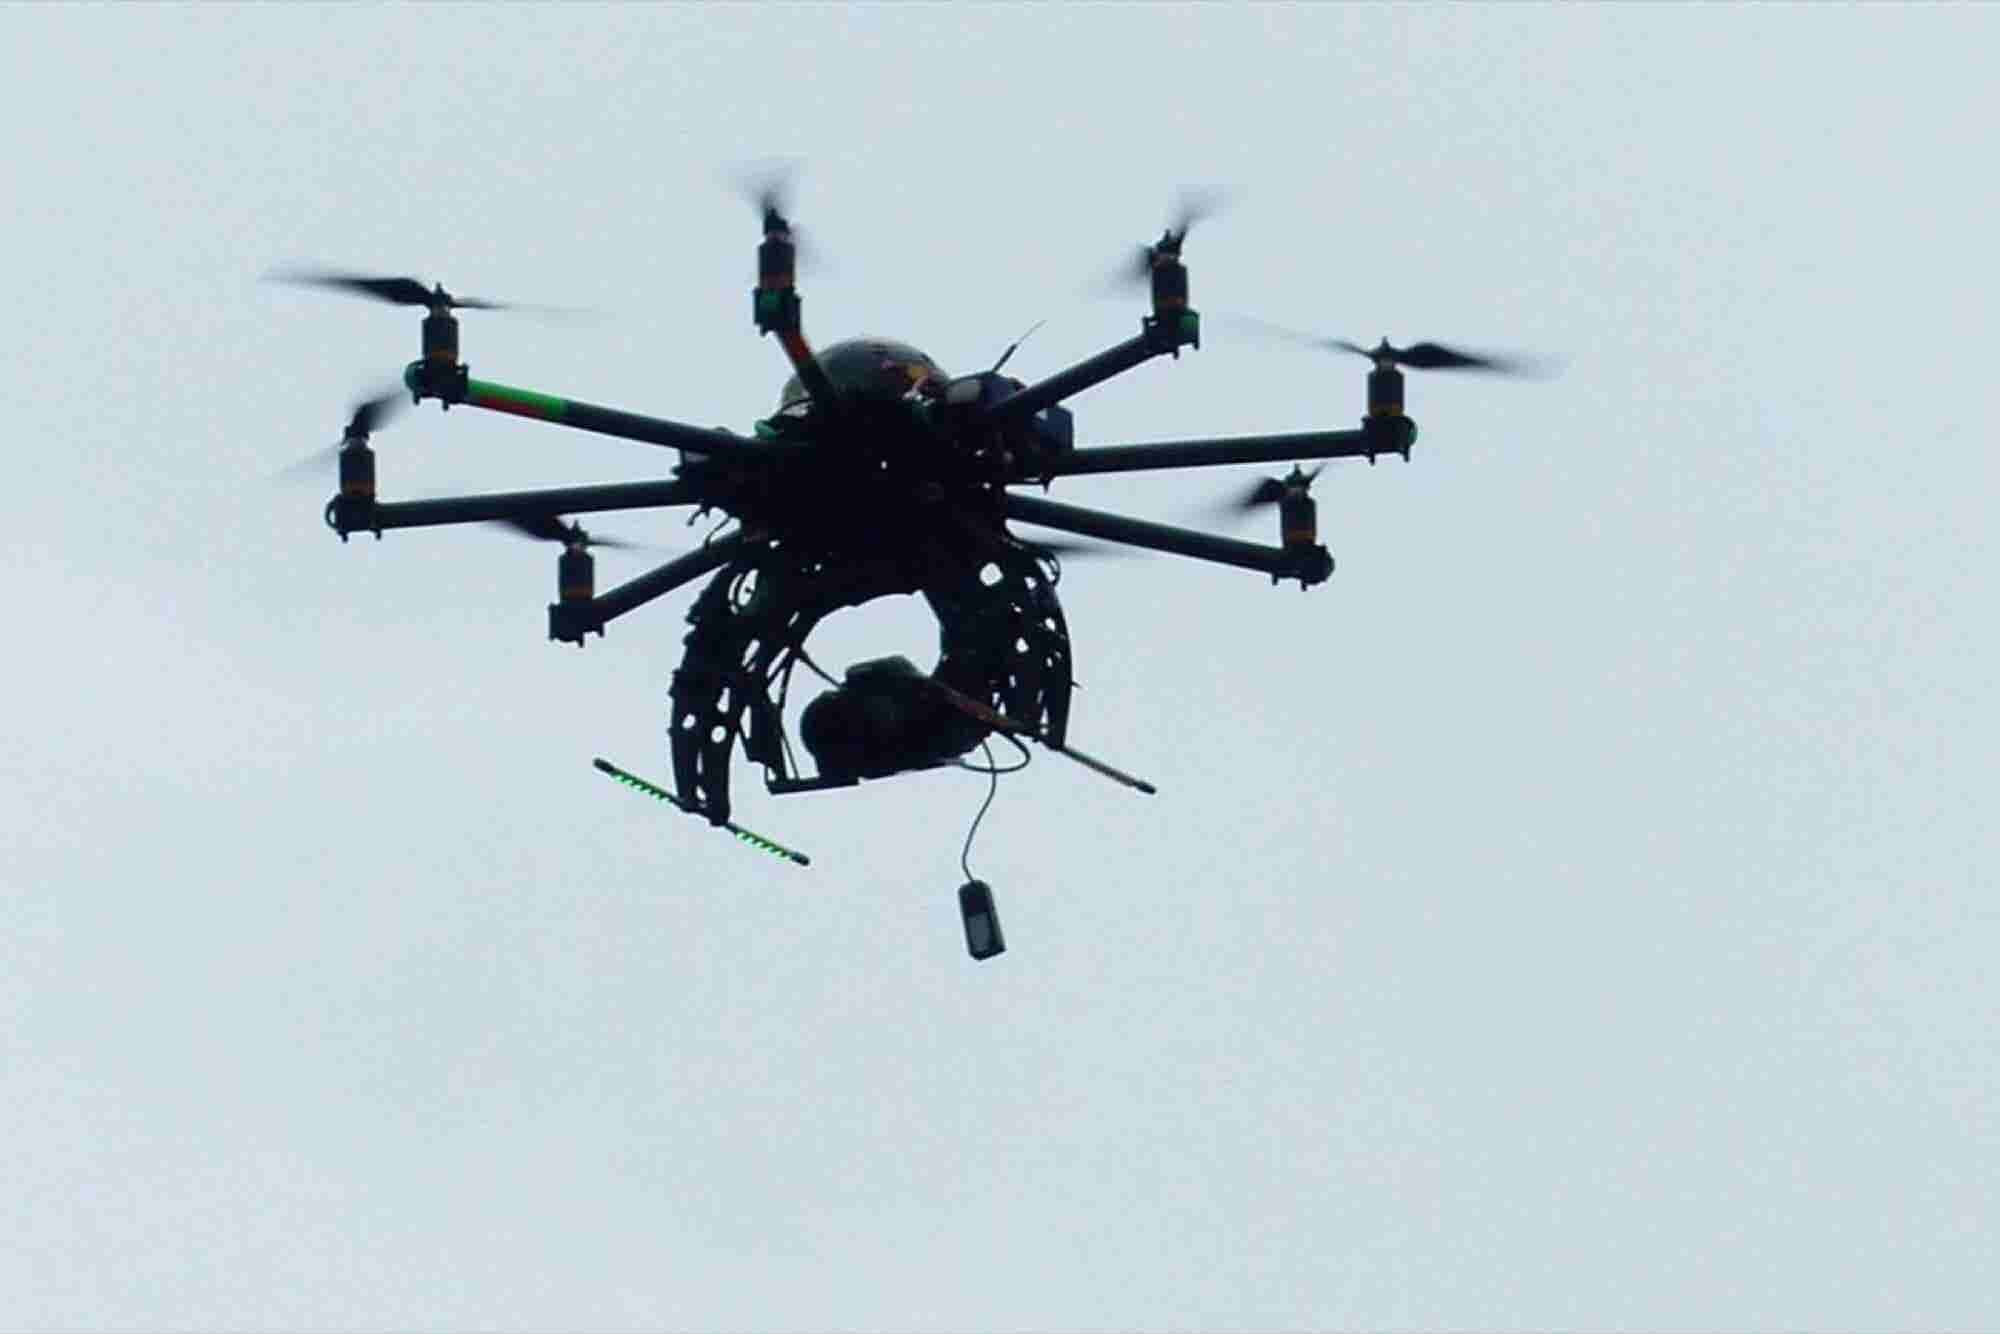 For Commercial Drones, the Biggest Questions Remain Unanswered